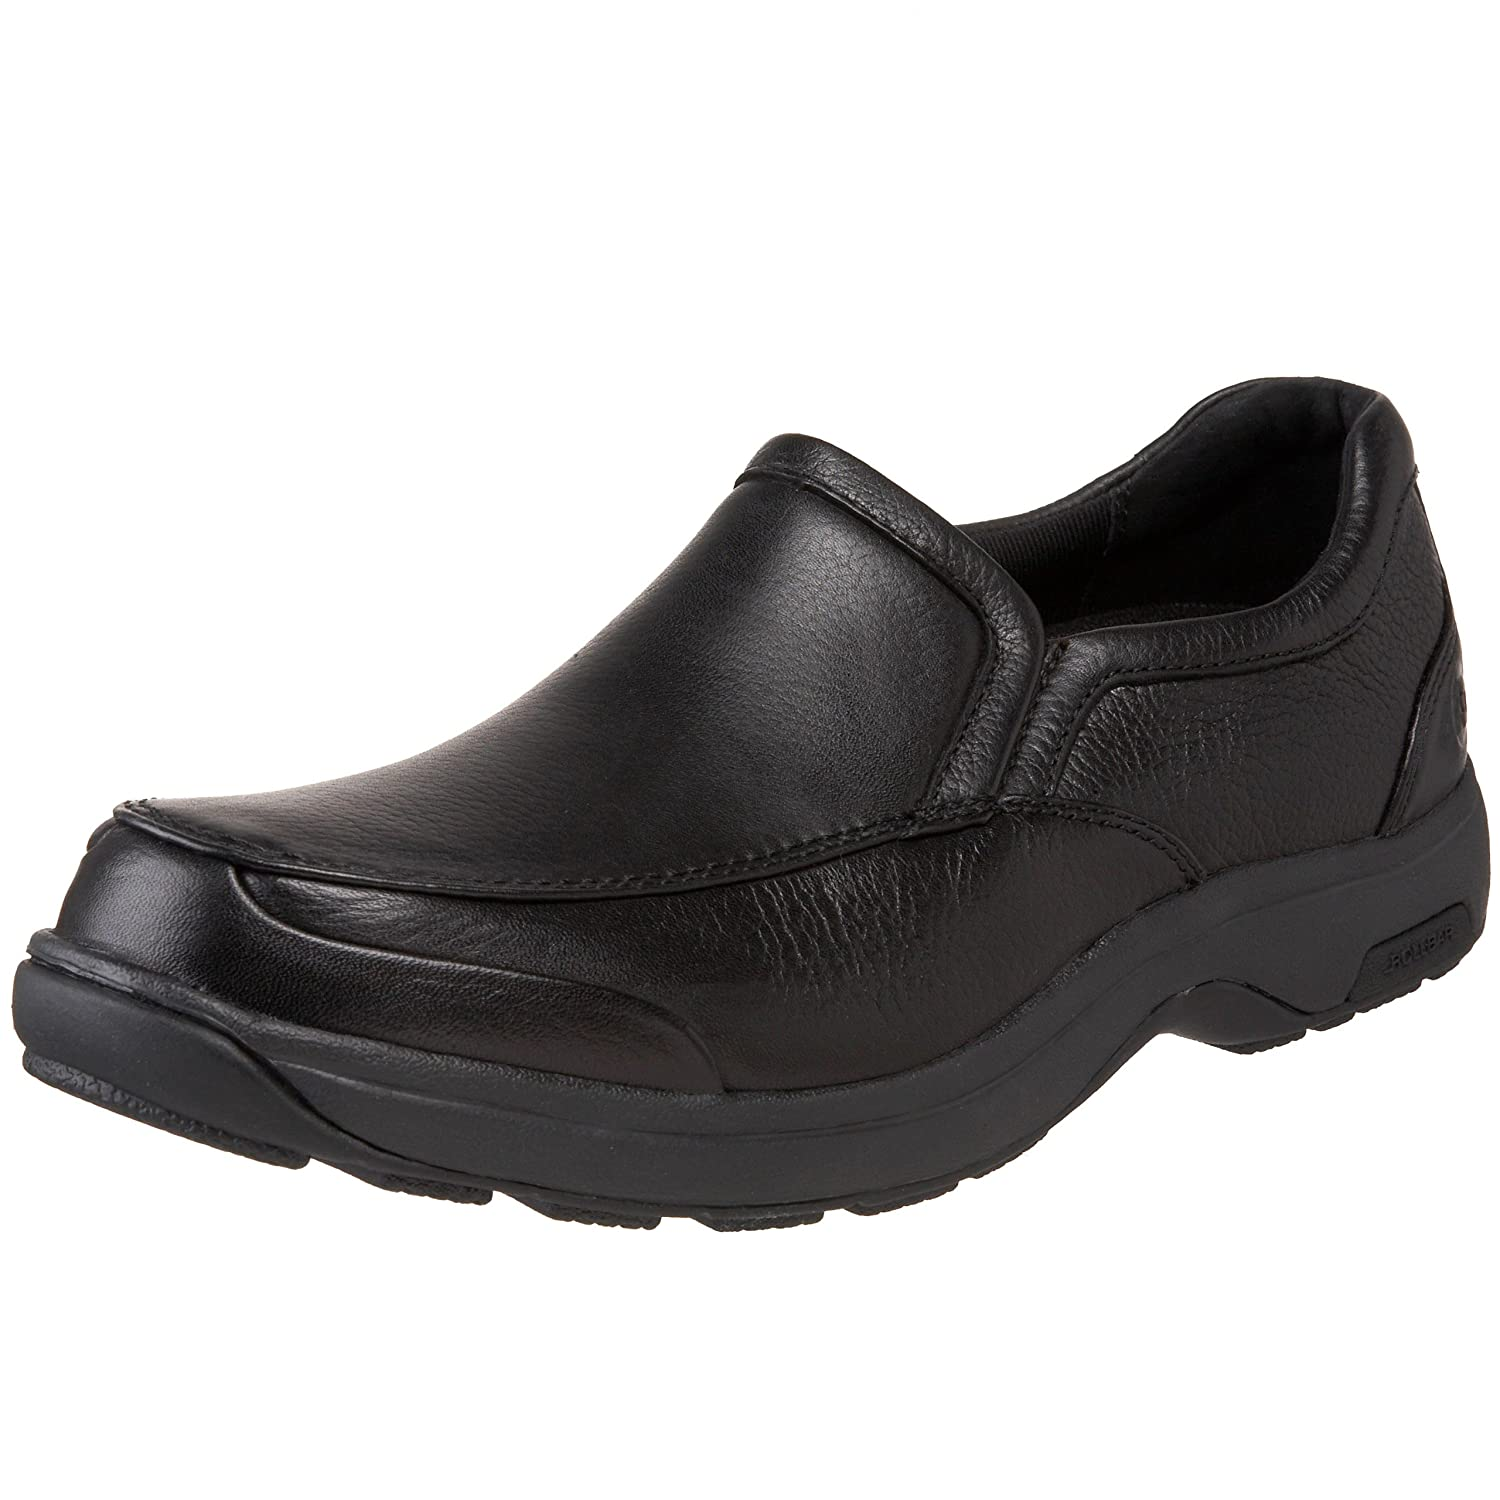 Dunham Men's Battery Park Slip-On